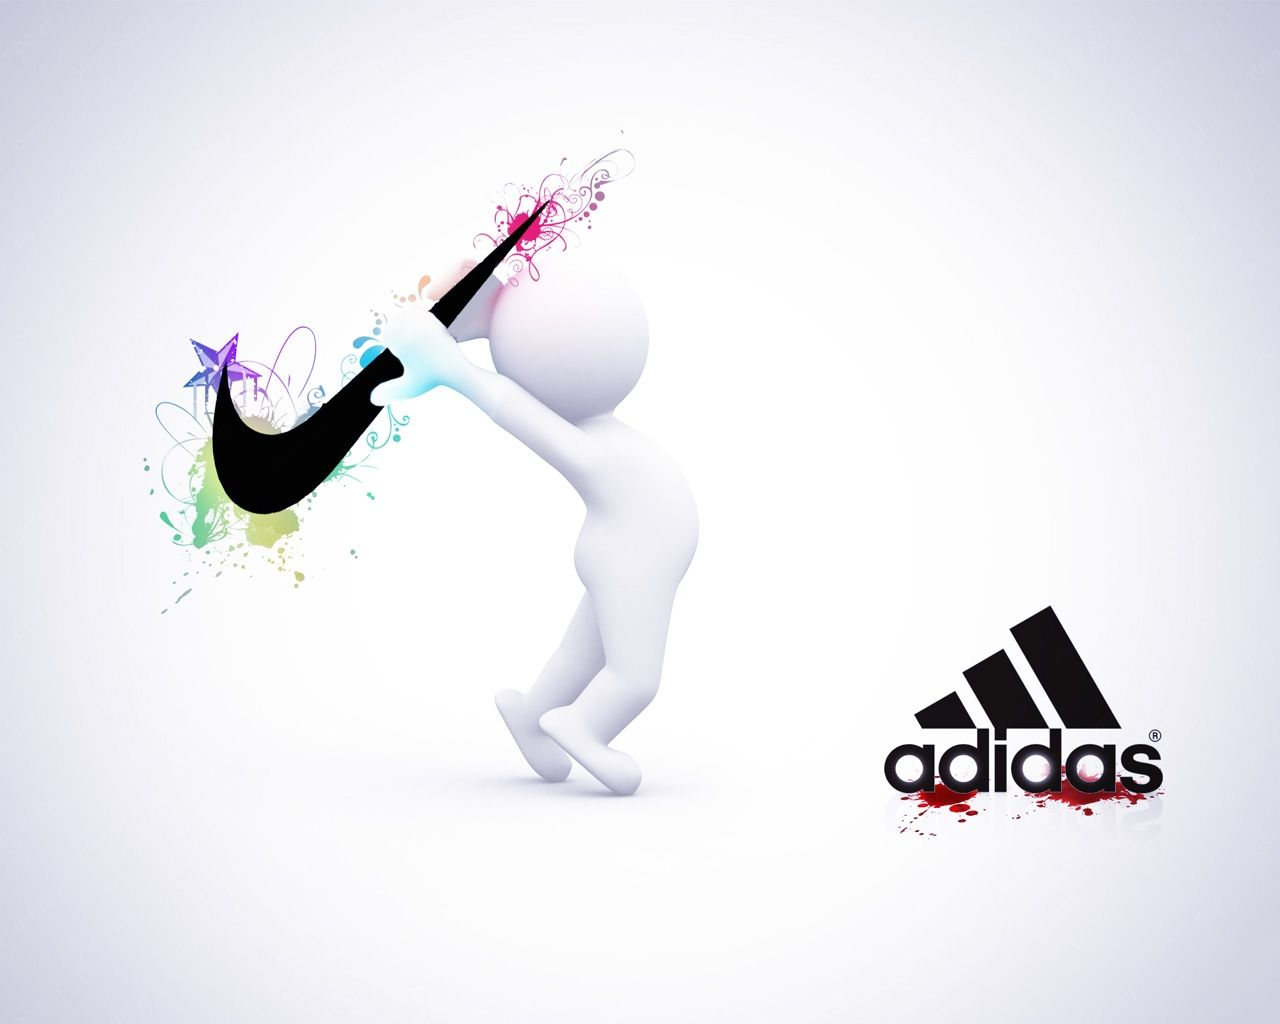 adidas case study strategic management What do you expect candidates to know about the adidas group before an interview we sometimes ask management-level candidates to perform case studies with case study you will be presented a specific business challenge.